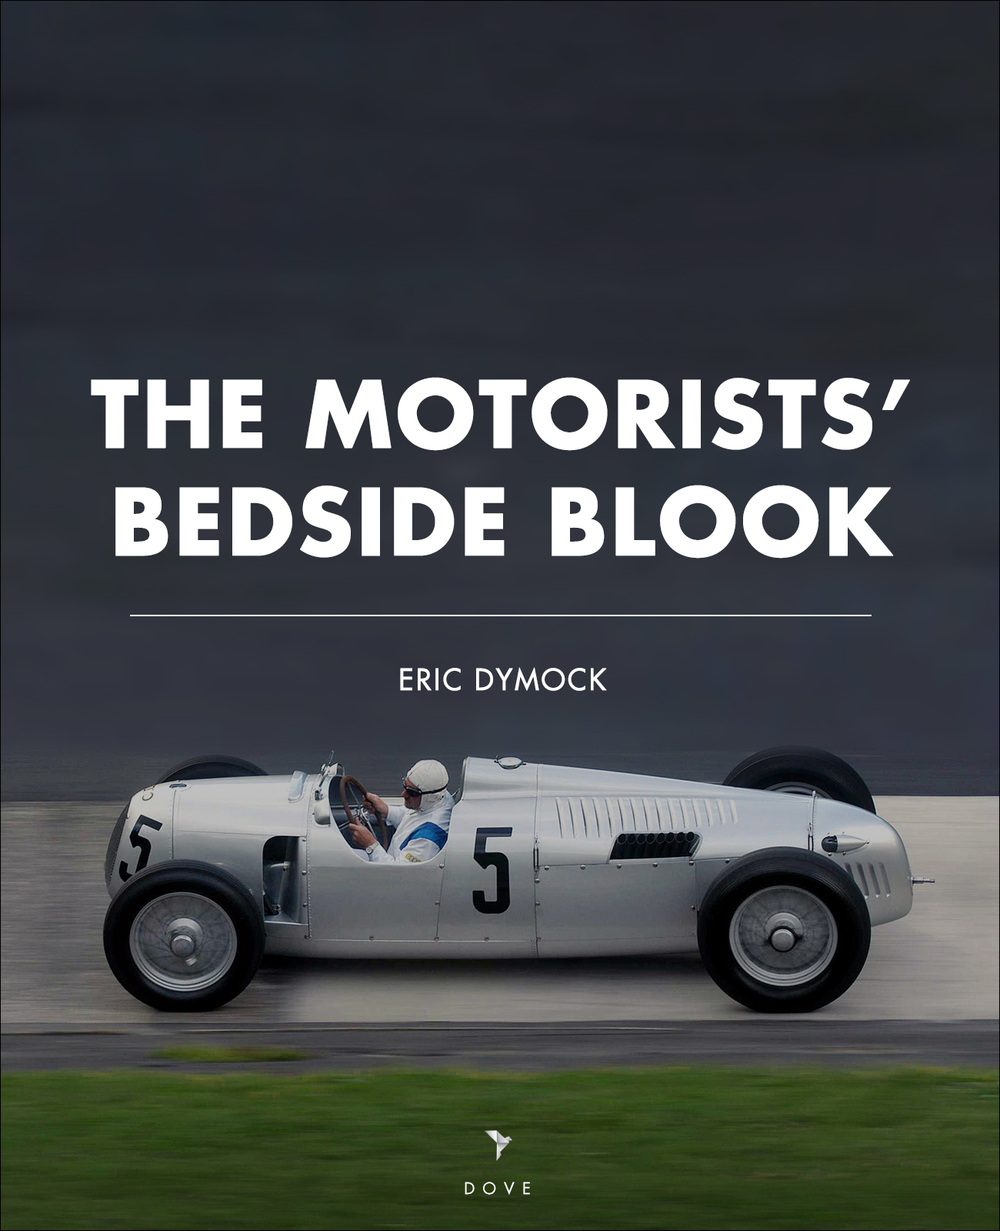 The Motorists' Bedside Blook